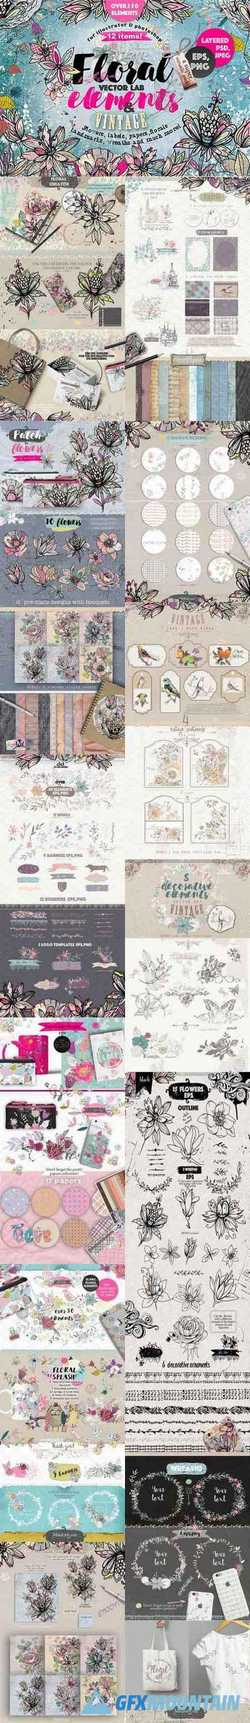 "VECTOR LAB ""FLORAL ELEMENTS & VINTAGE FLOWERS"" - 875235"